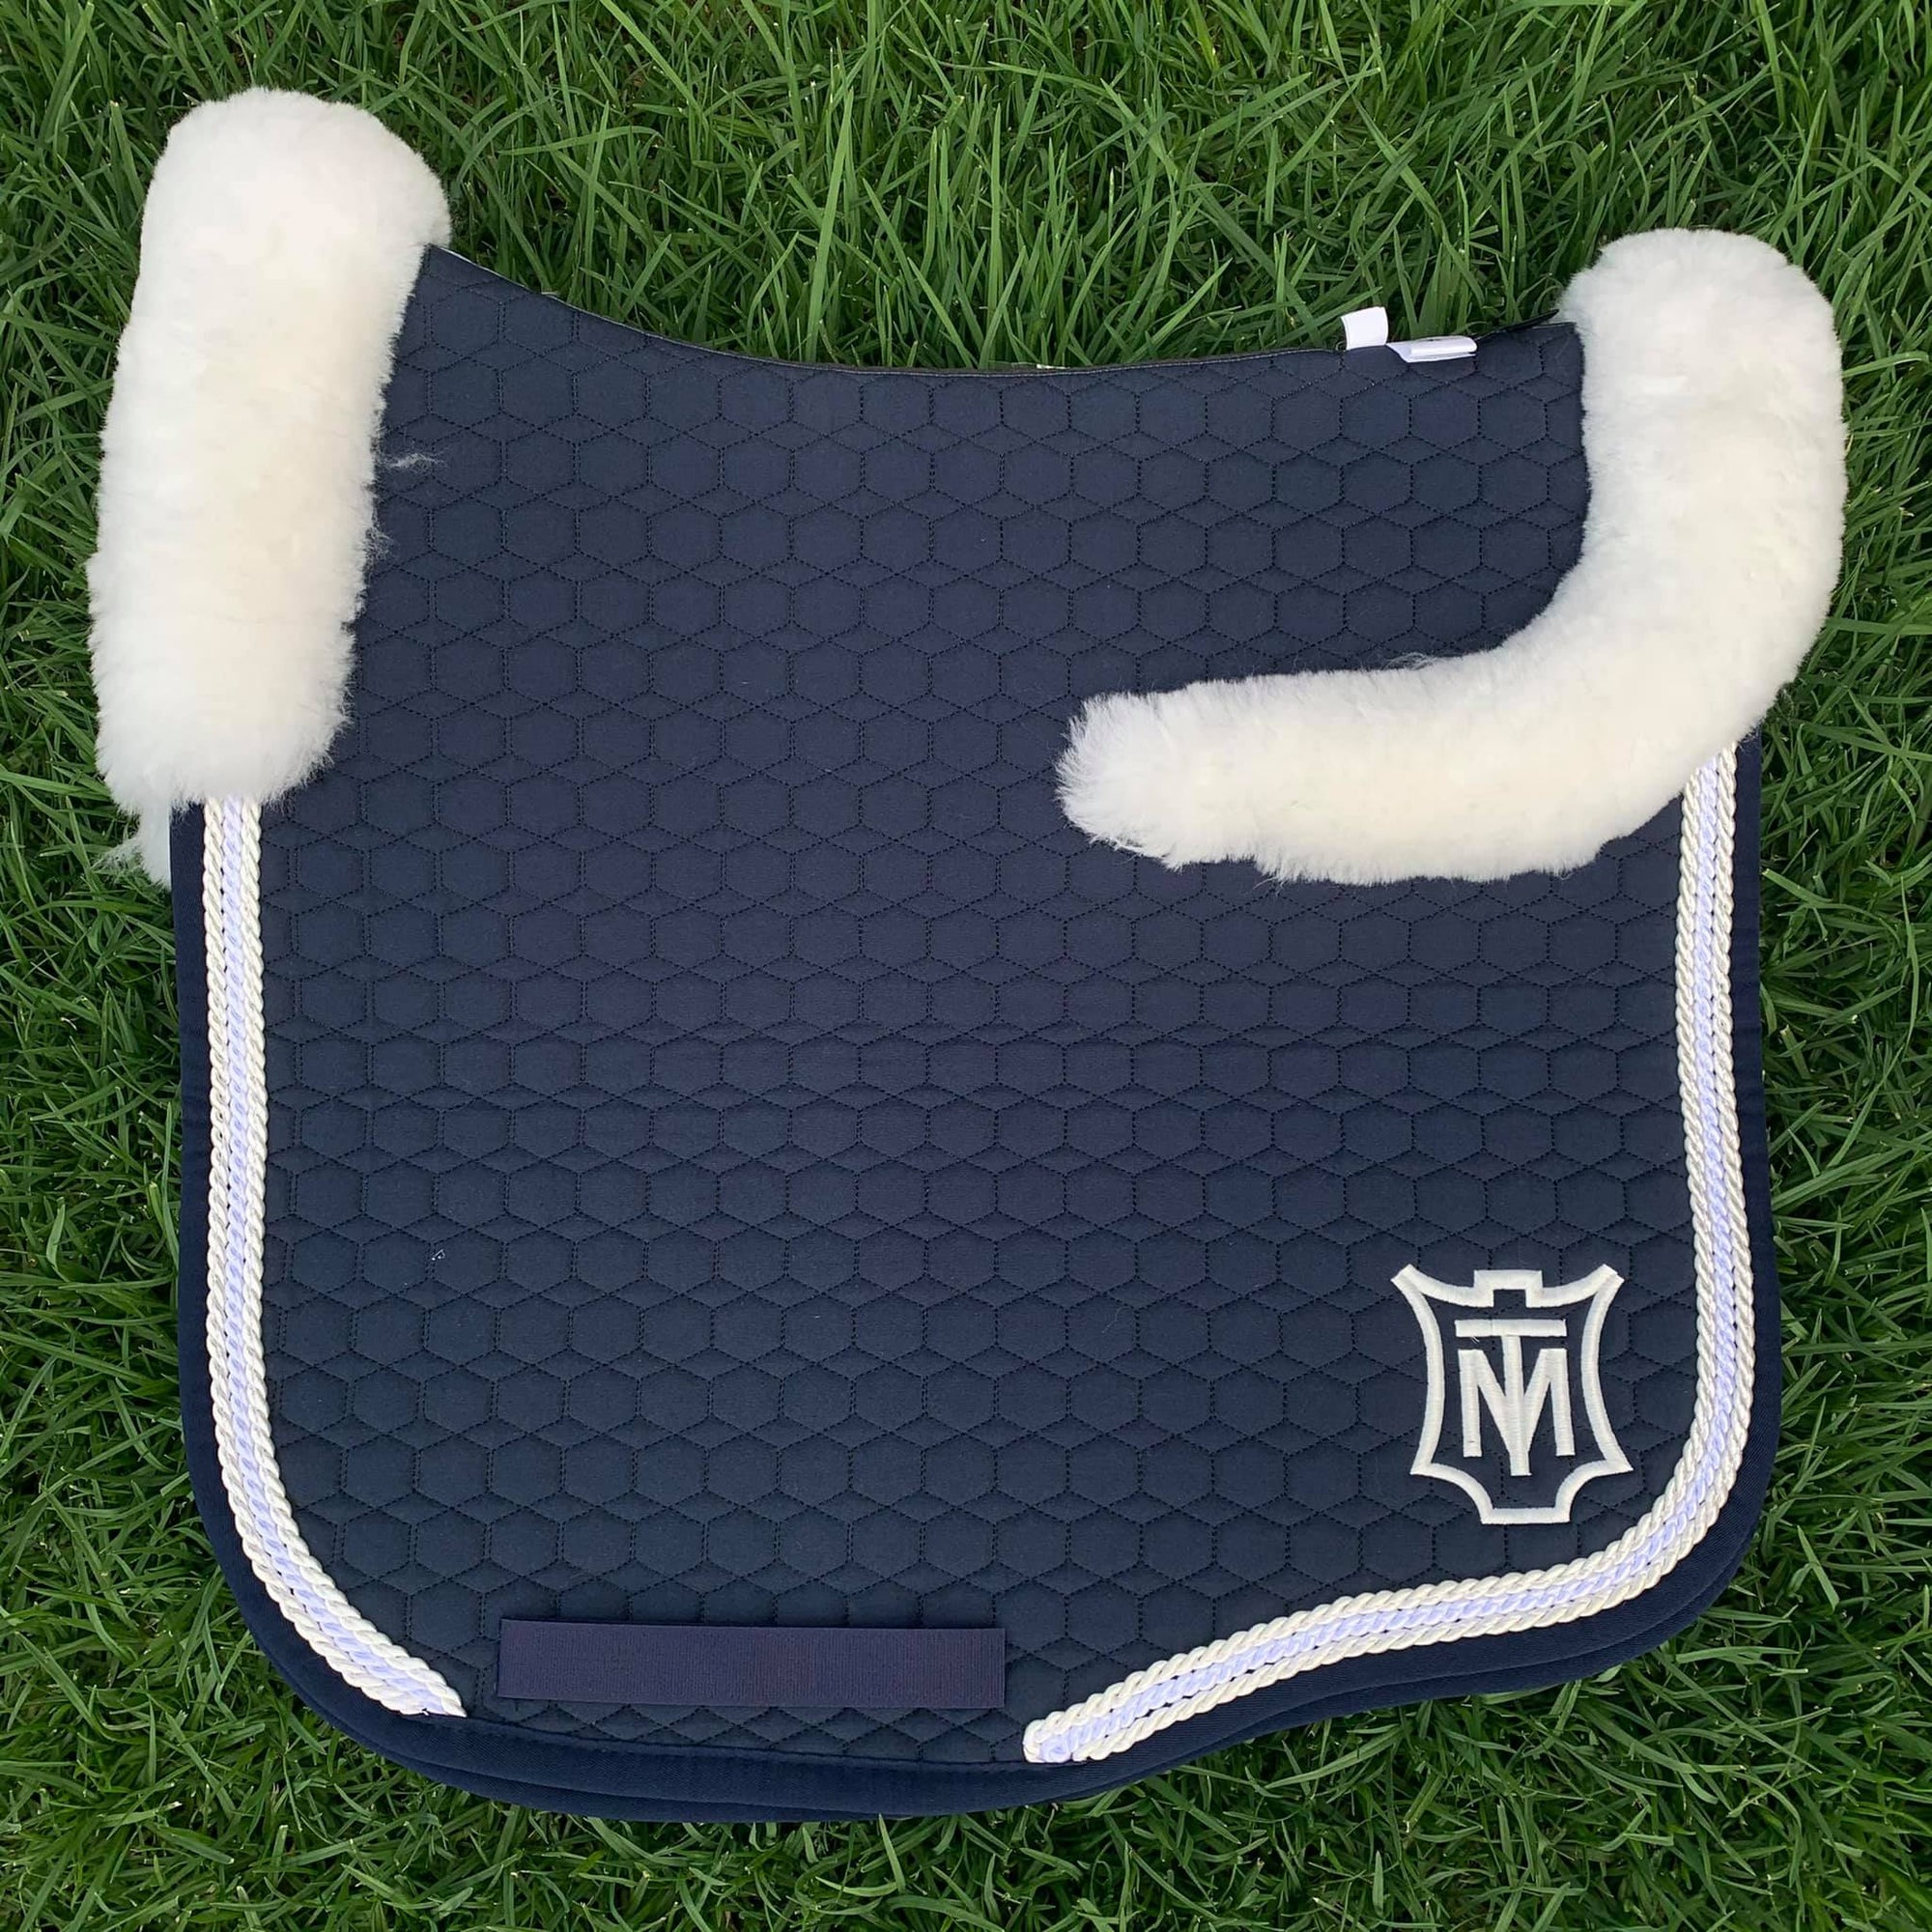 E.A Mattes Instock - M Size/Top Fleece - Navy with Pearl/White/Pearl (White fleece)